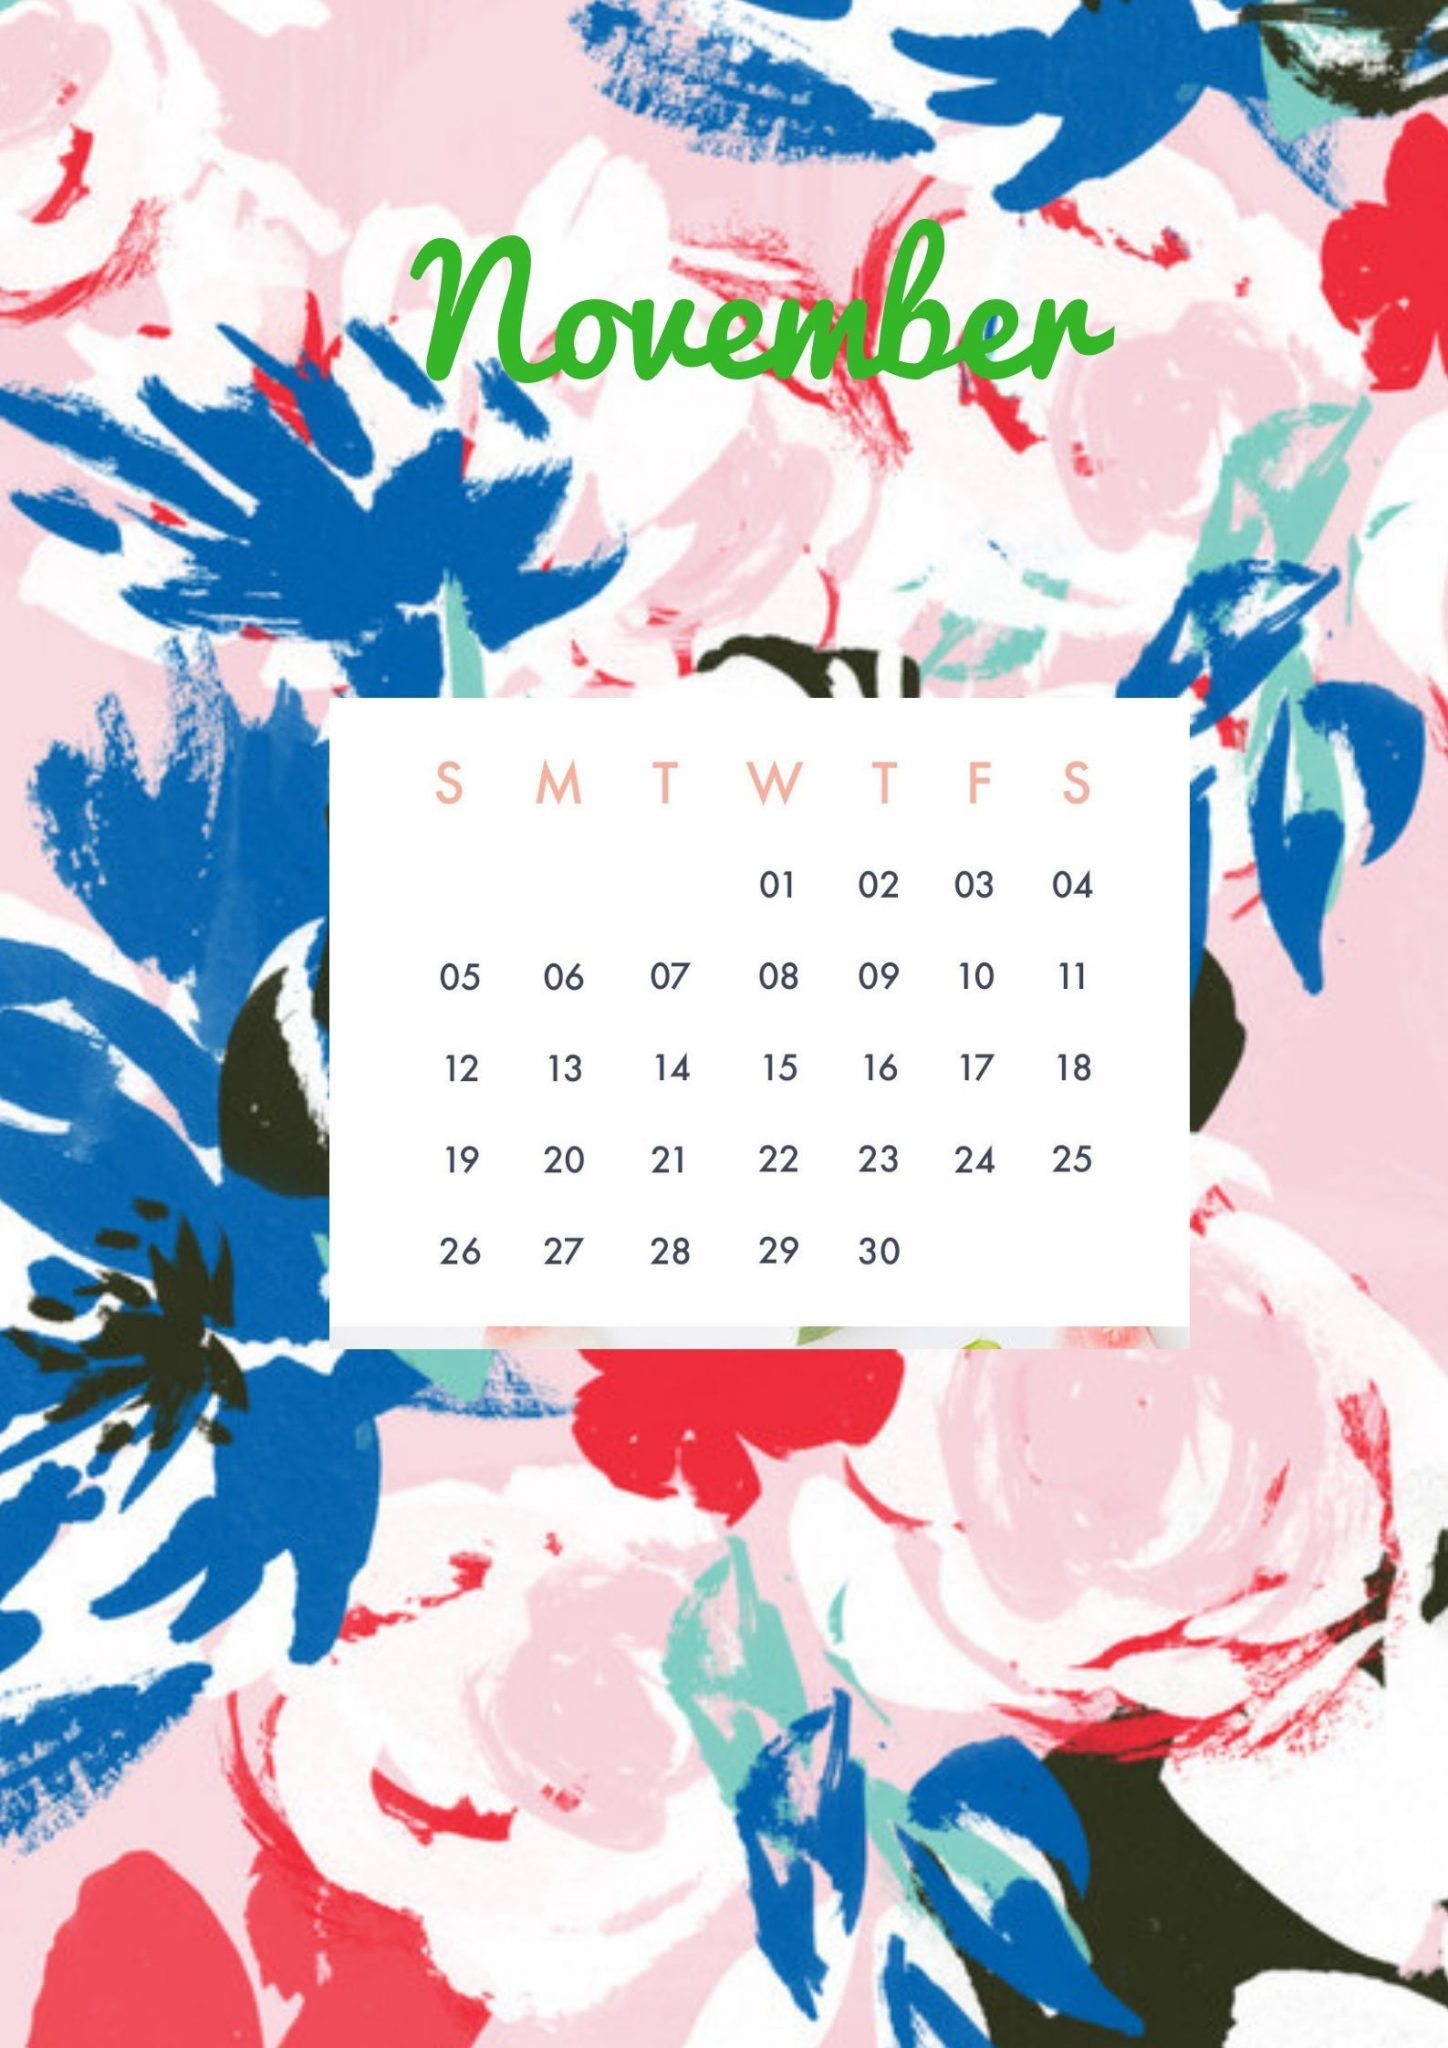 Floral November Calendar 2019 Cute Wallpaper For Desktop Laptop